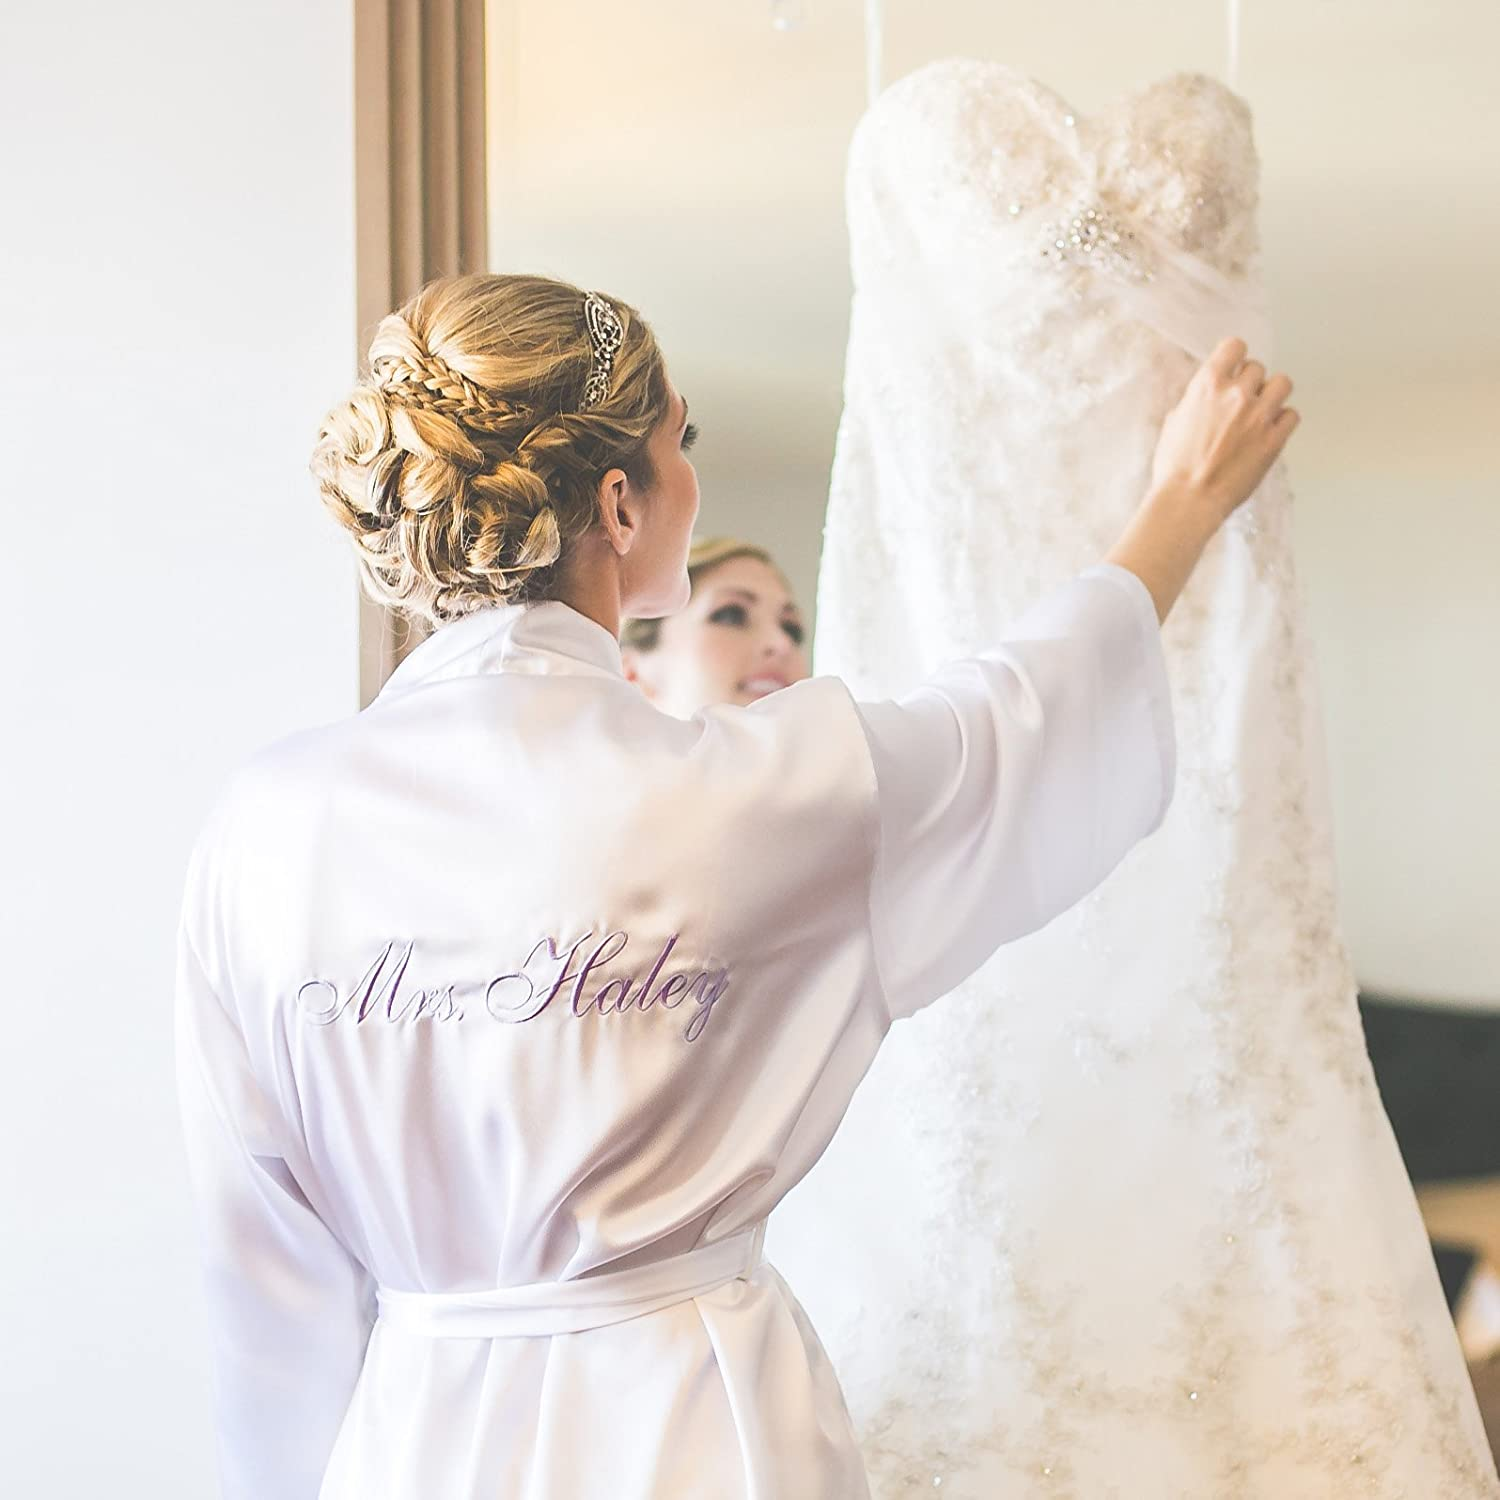 Bride Robe Personalized Bride Robe Satin Mrs Robe Mrs Gifts Bridal Shower Gift for Bride Getting Ready Robe Bride to be Gift